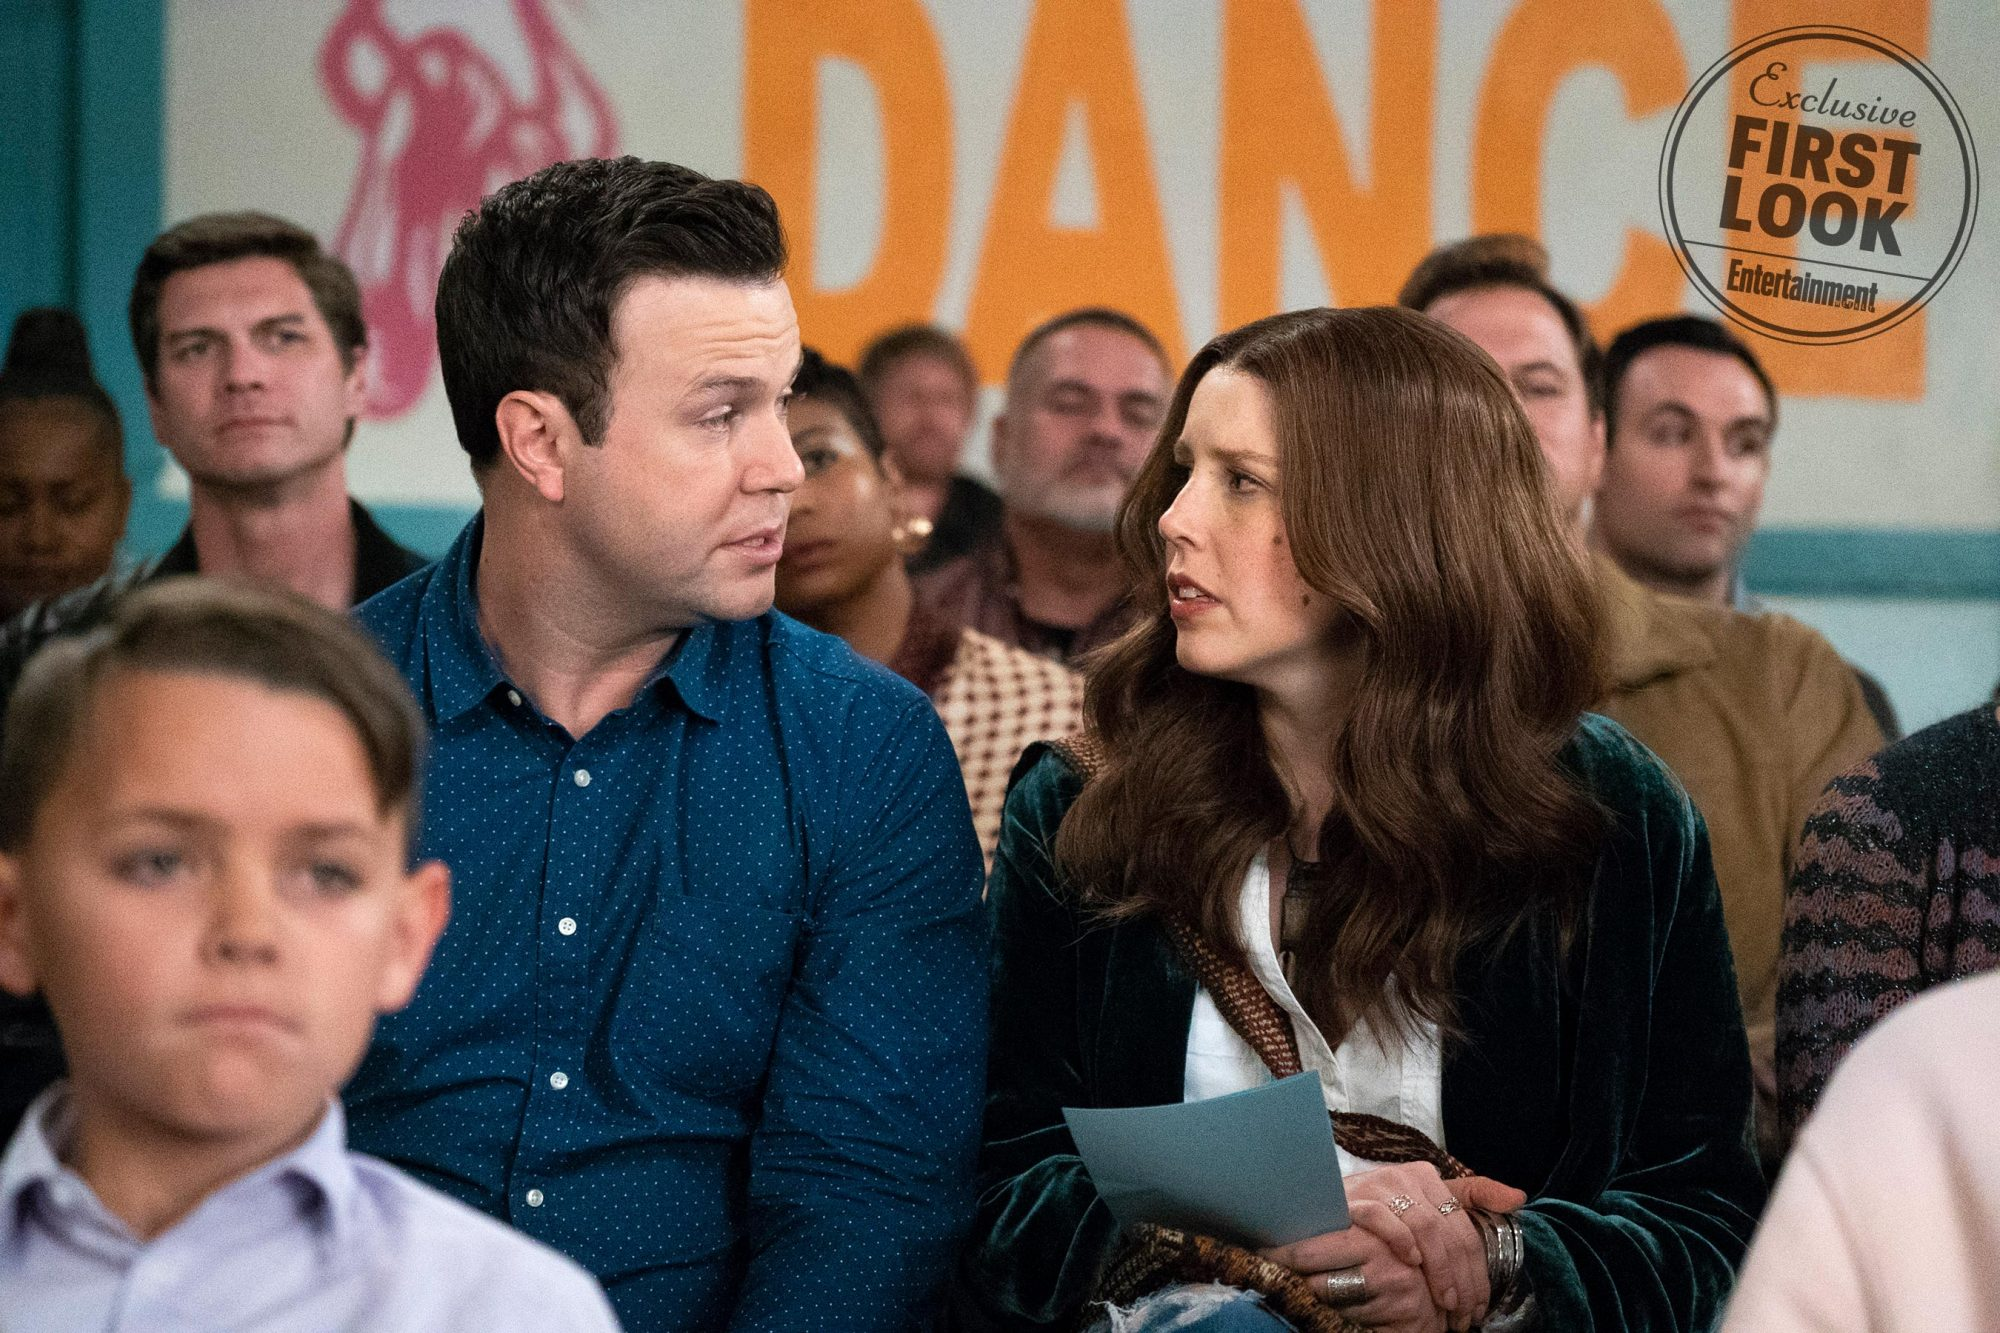 TARAN KILLAM, VANESSA BAYER